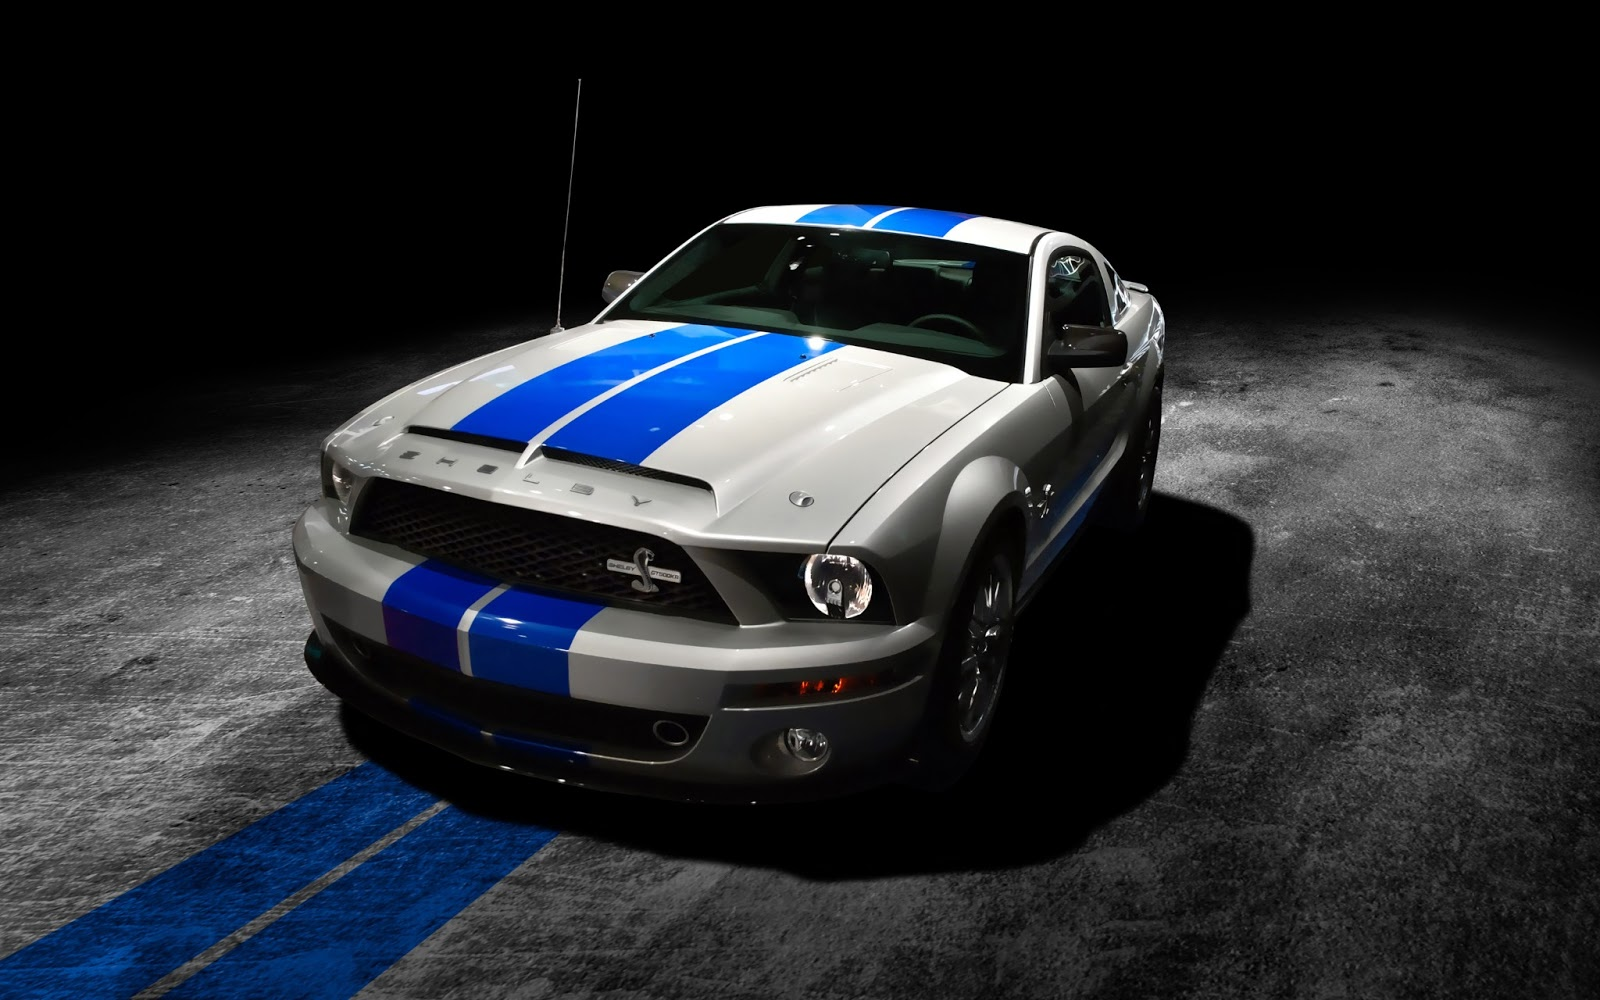 Wallpapers World Cars Wallpapers Full HD 1080p 199 1600x1000